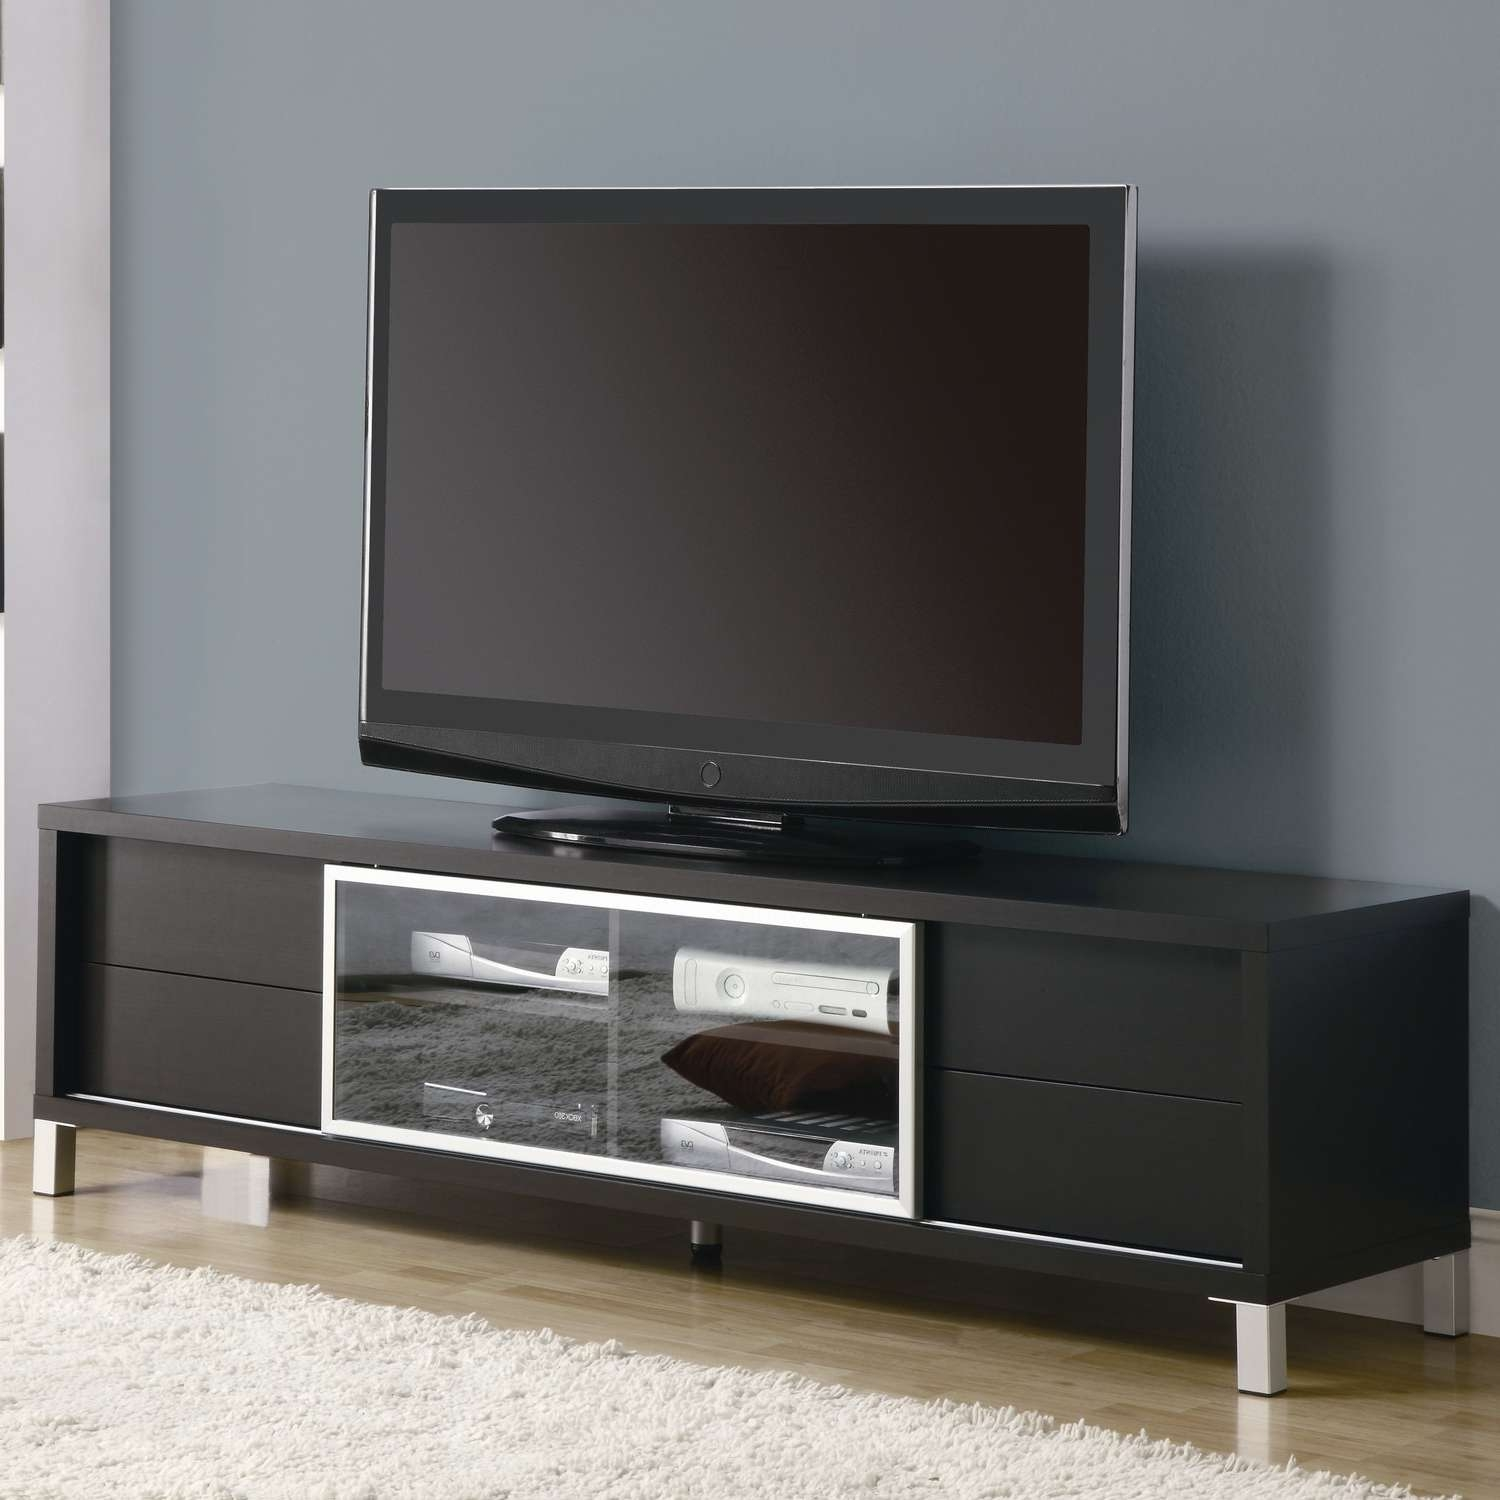 Simple Black Led Tv Right For Unusual Tv Stands On Wood Floor With For Led Tv Stands (View 16 of 20)